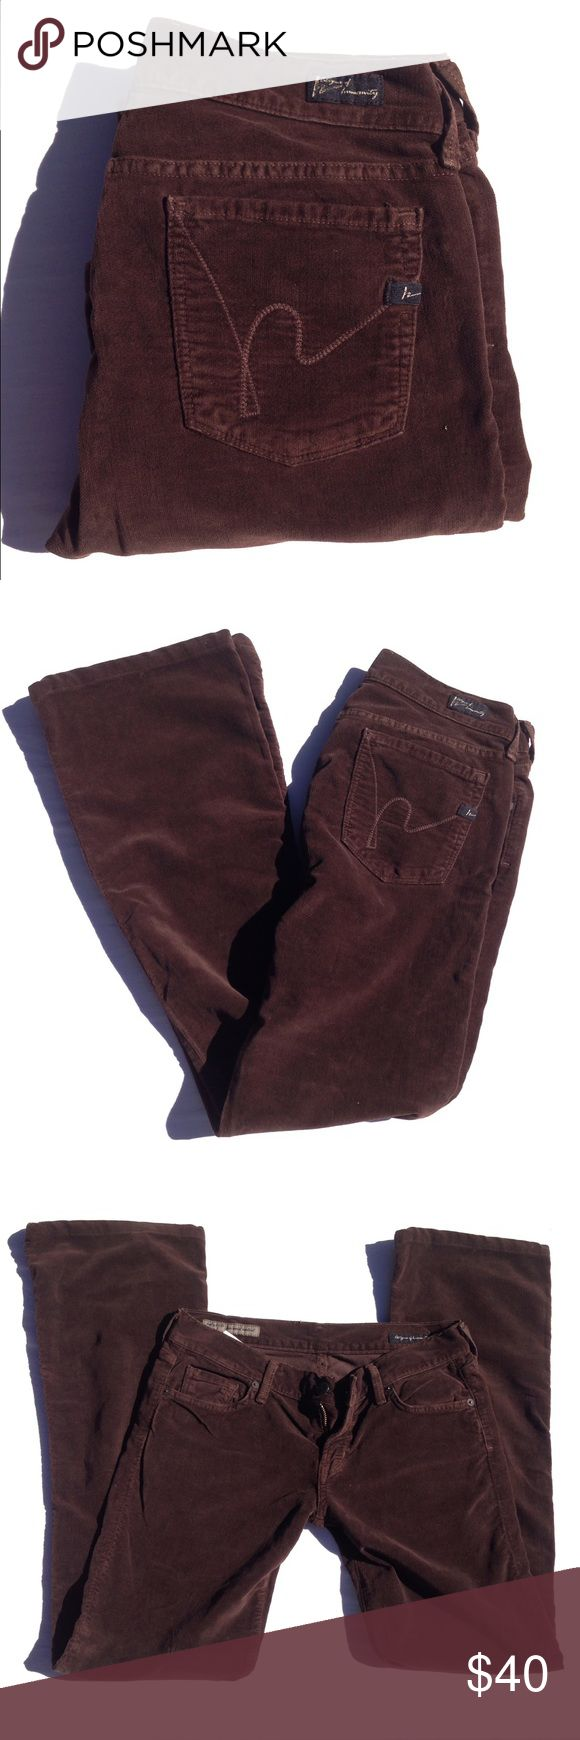 🆕CITIZENS OF HUMANITY velvet jeans Sooo soft, velvet, flattering, bootcut. You will live in these. Inseam appx 30, rise appx 7. Thank you for visiting my closet. Please feel free to ask me any questions. I am here to help you. :) Bundle to save. Citizens of Humanity Jeans